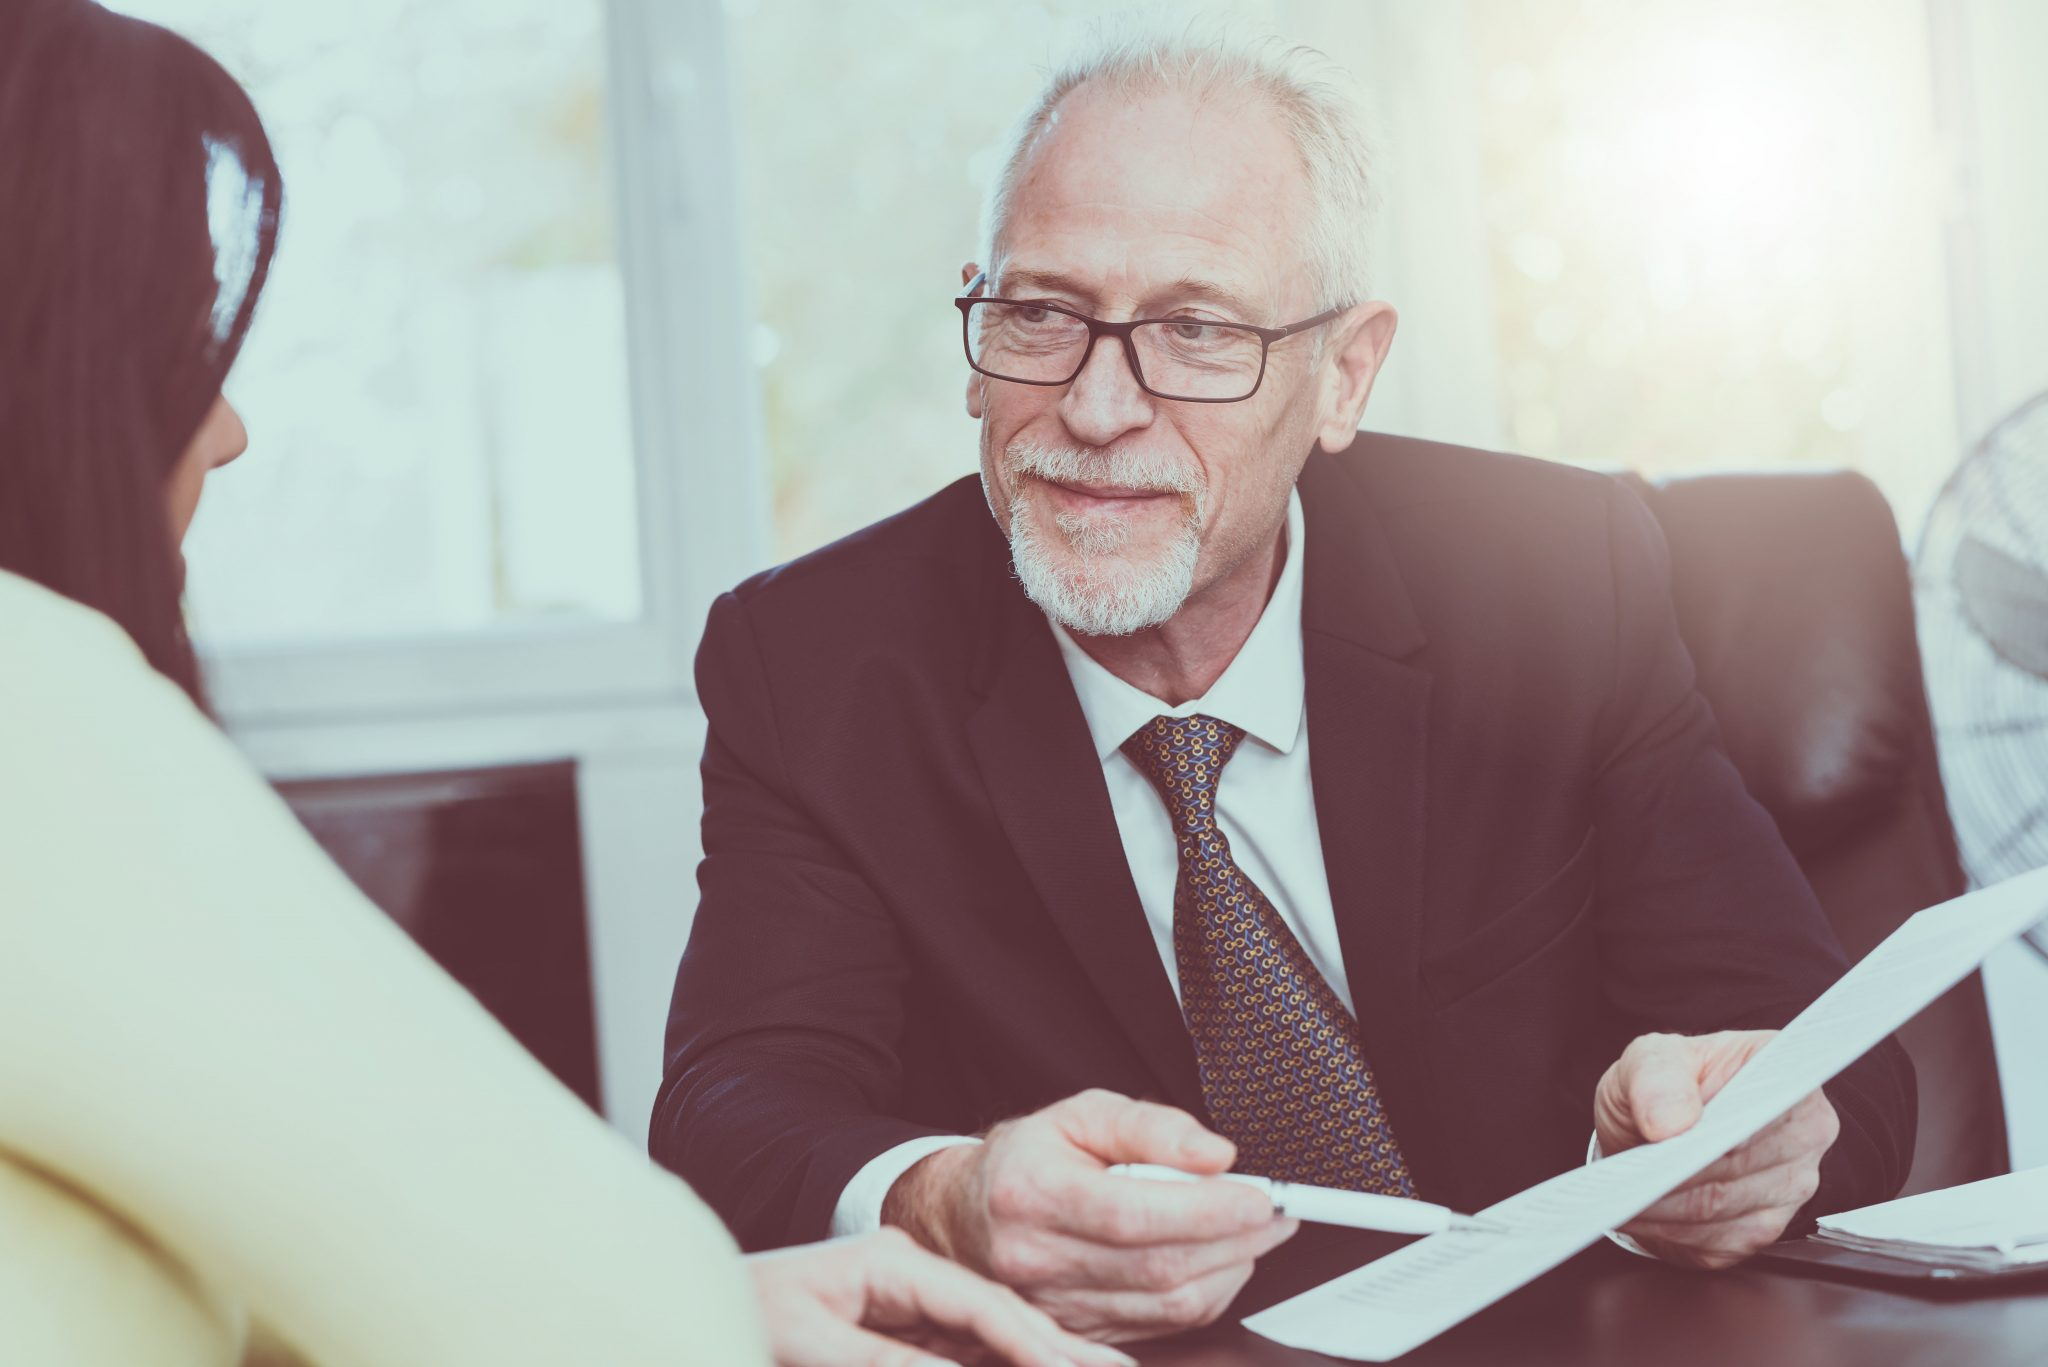 Life insurance Advisor reviewing policy with client